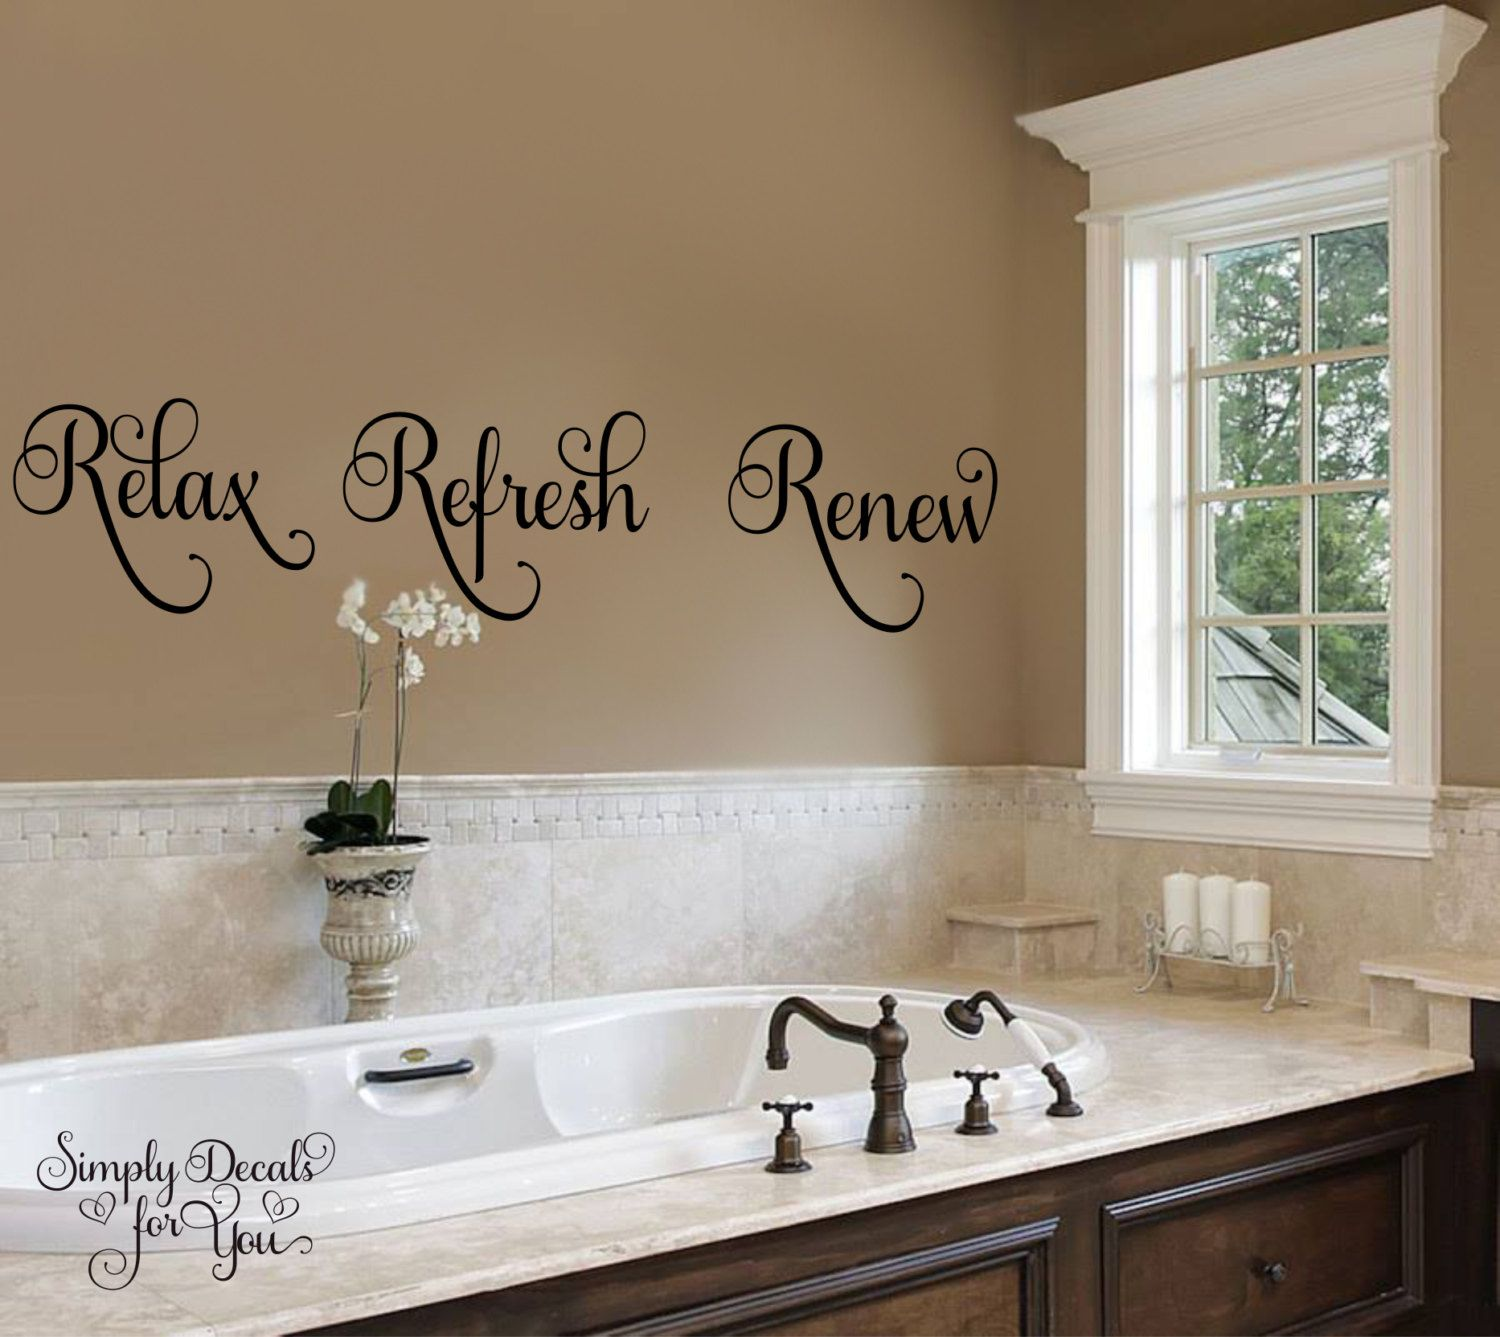 Vinyl Wall Decal Relax Refresh Renew Bathroom Wall Decal Bathroom Decal